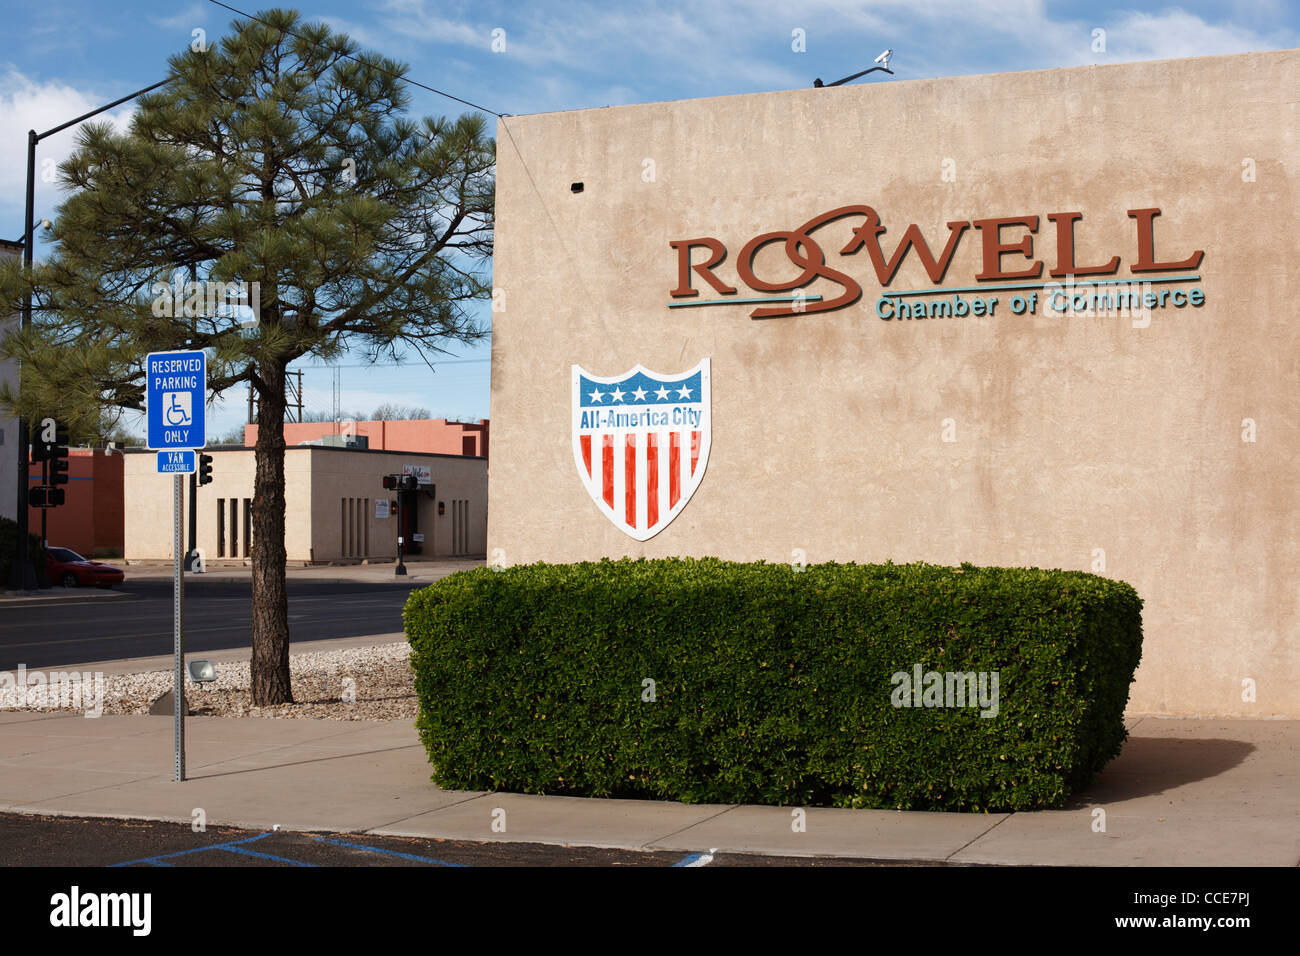 The Roswell, New Mexico Chamber of Commerce. - Stock Image